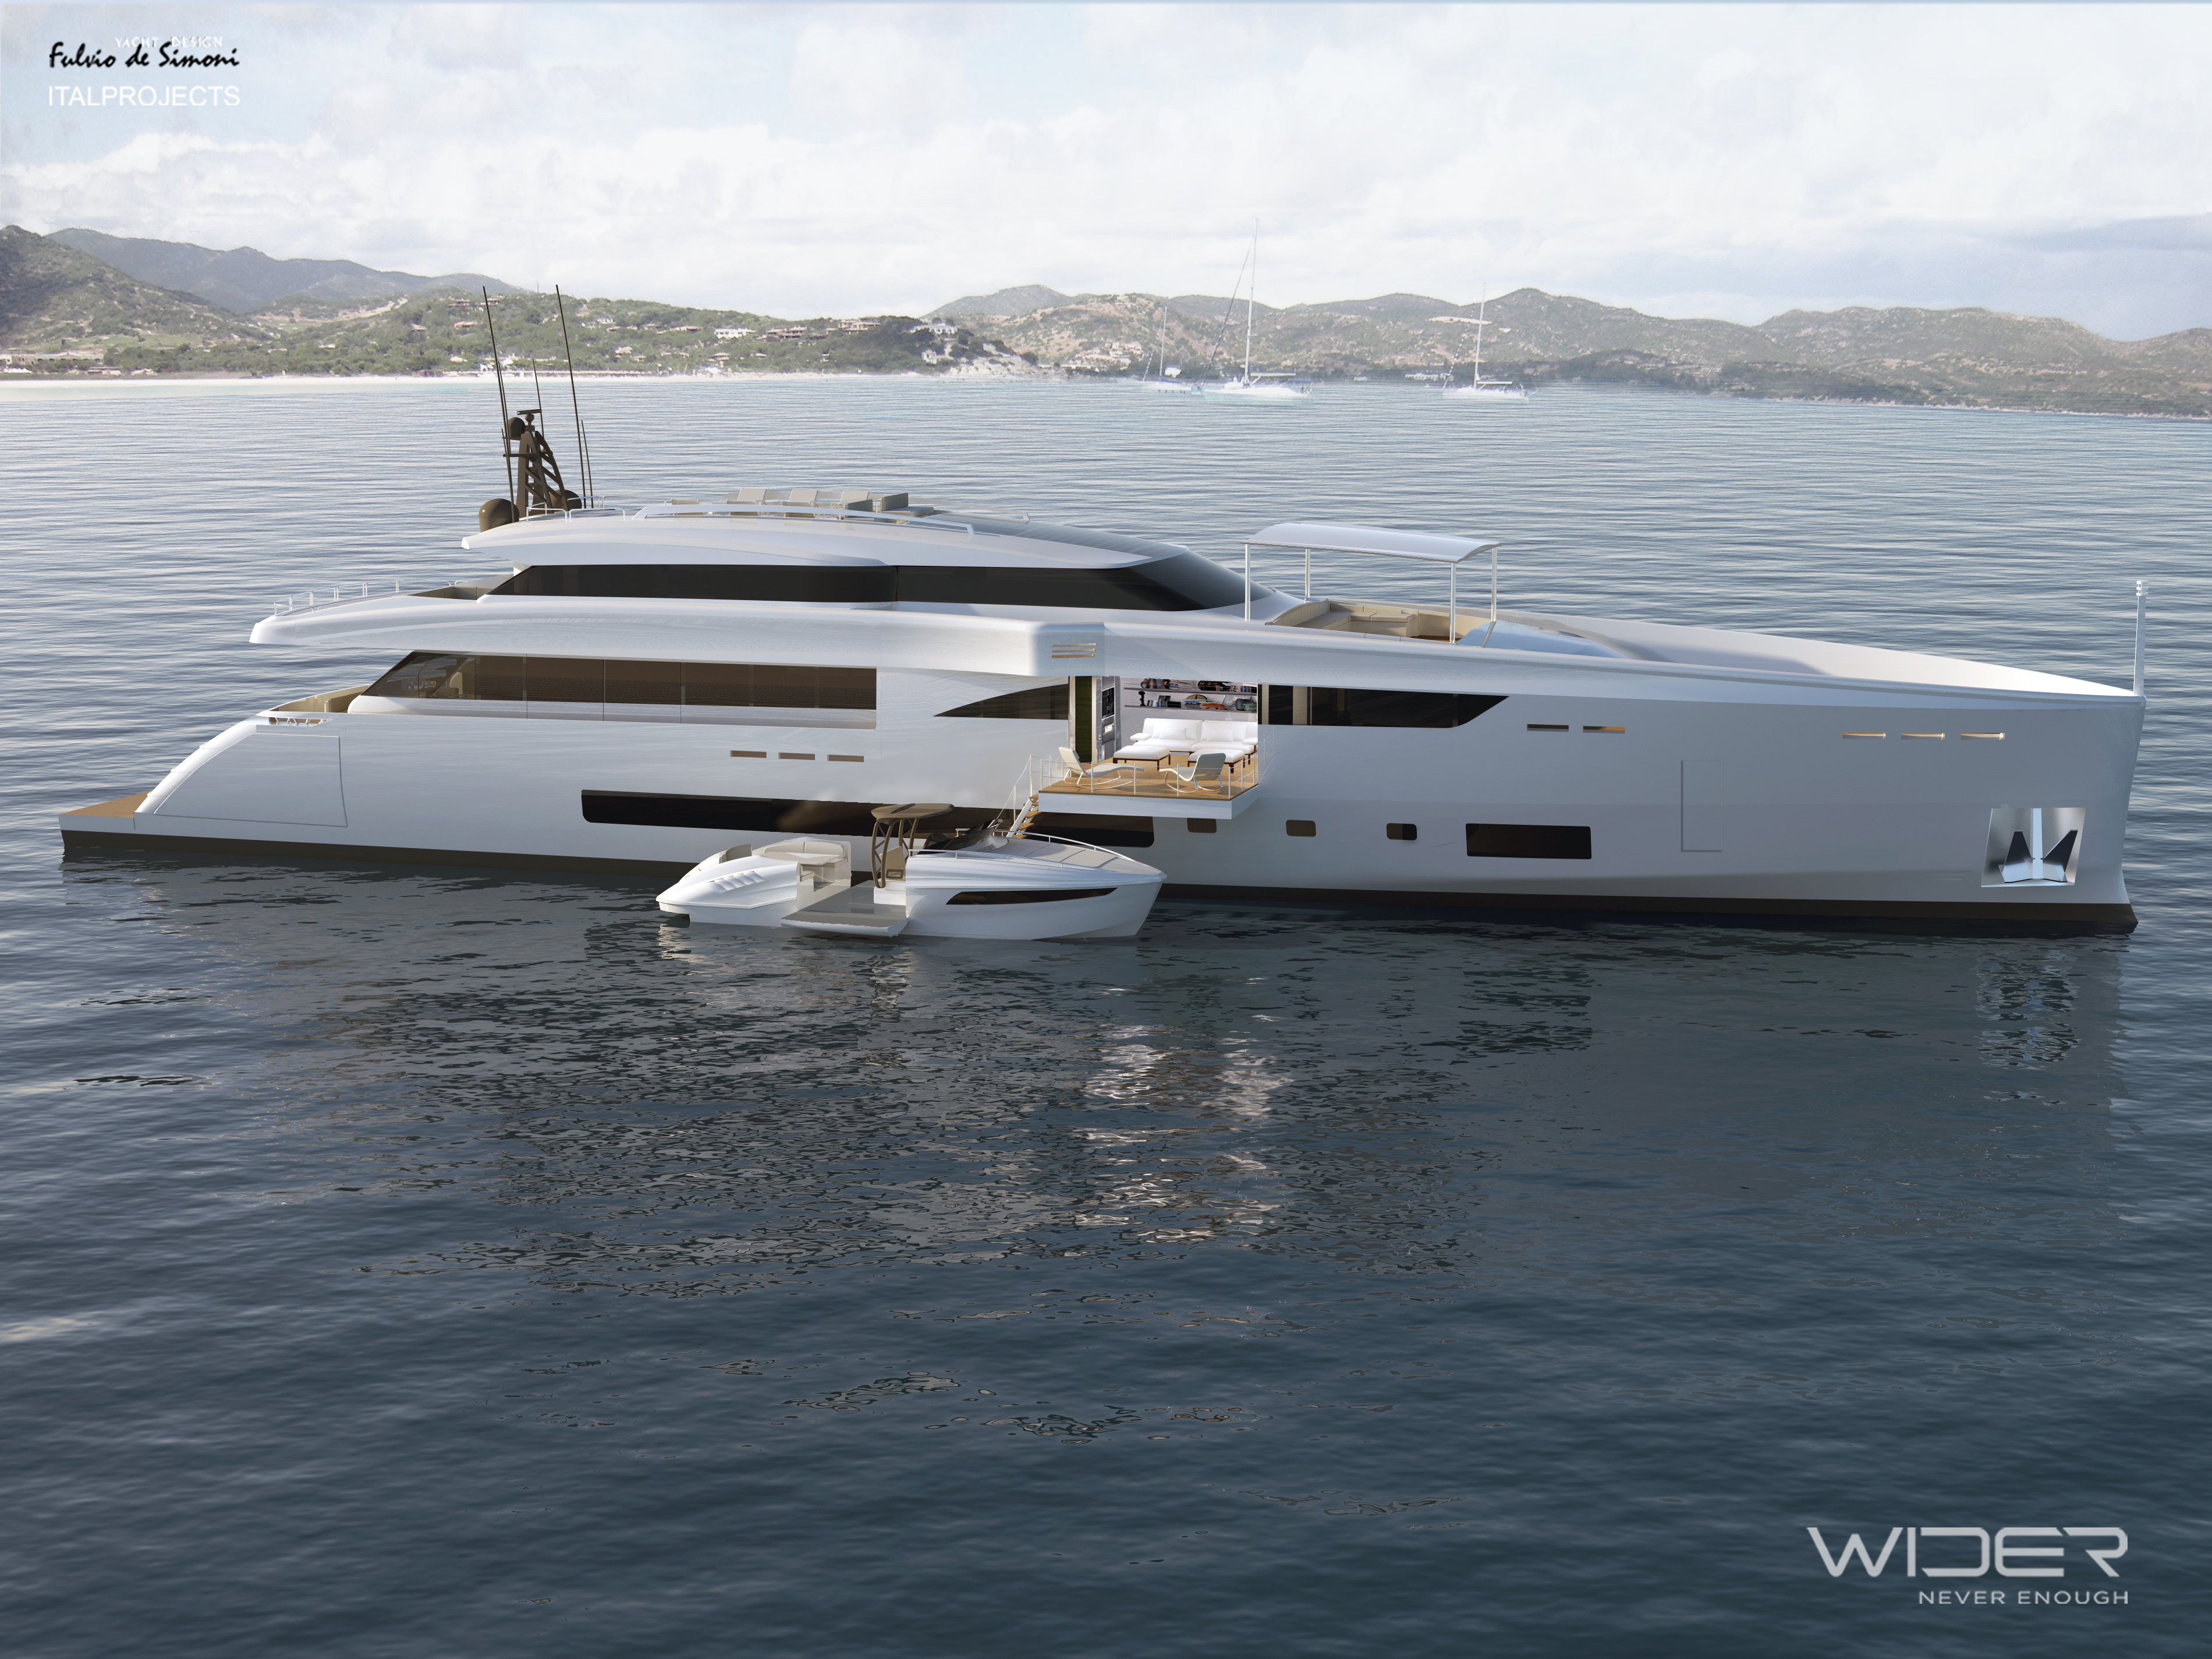 45m luxury motor yacht Wider 150 with a 33' Wider yacht ...